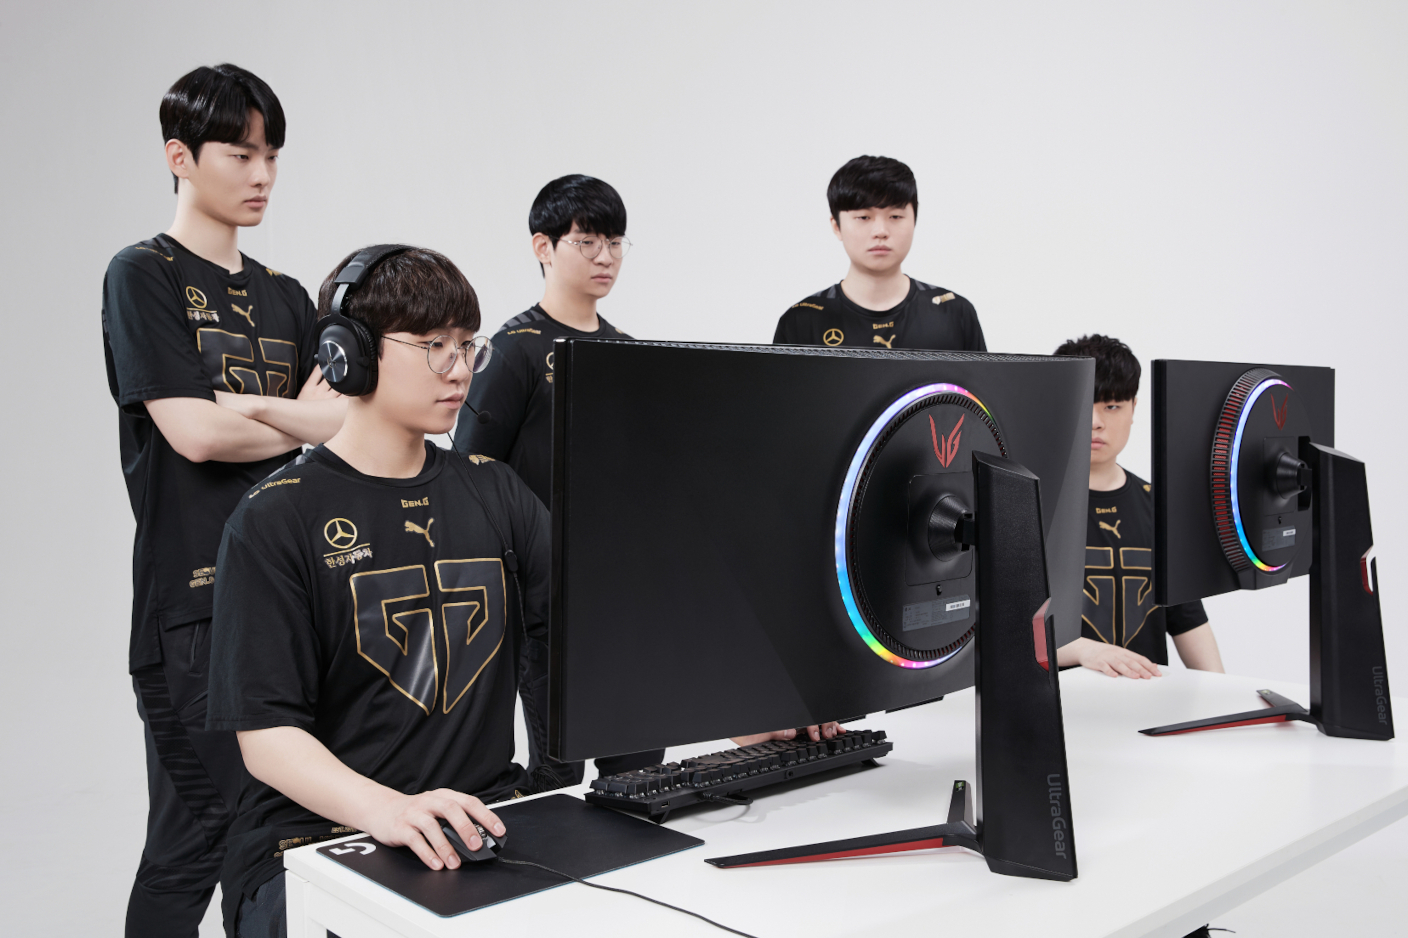 Gen.G's elite players using the lightspeed UltraGearTM gaming monitors provided via the team's partnership with LG.